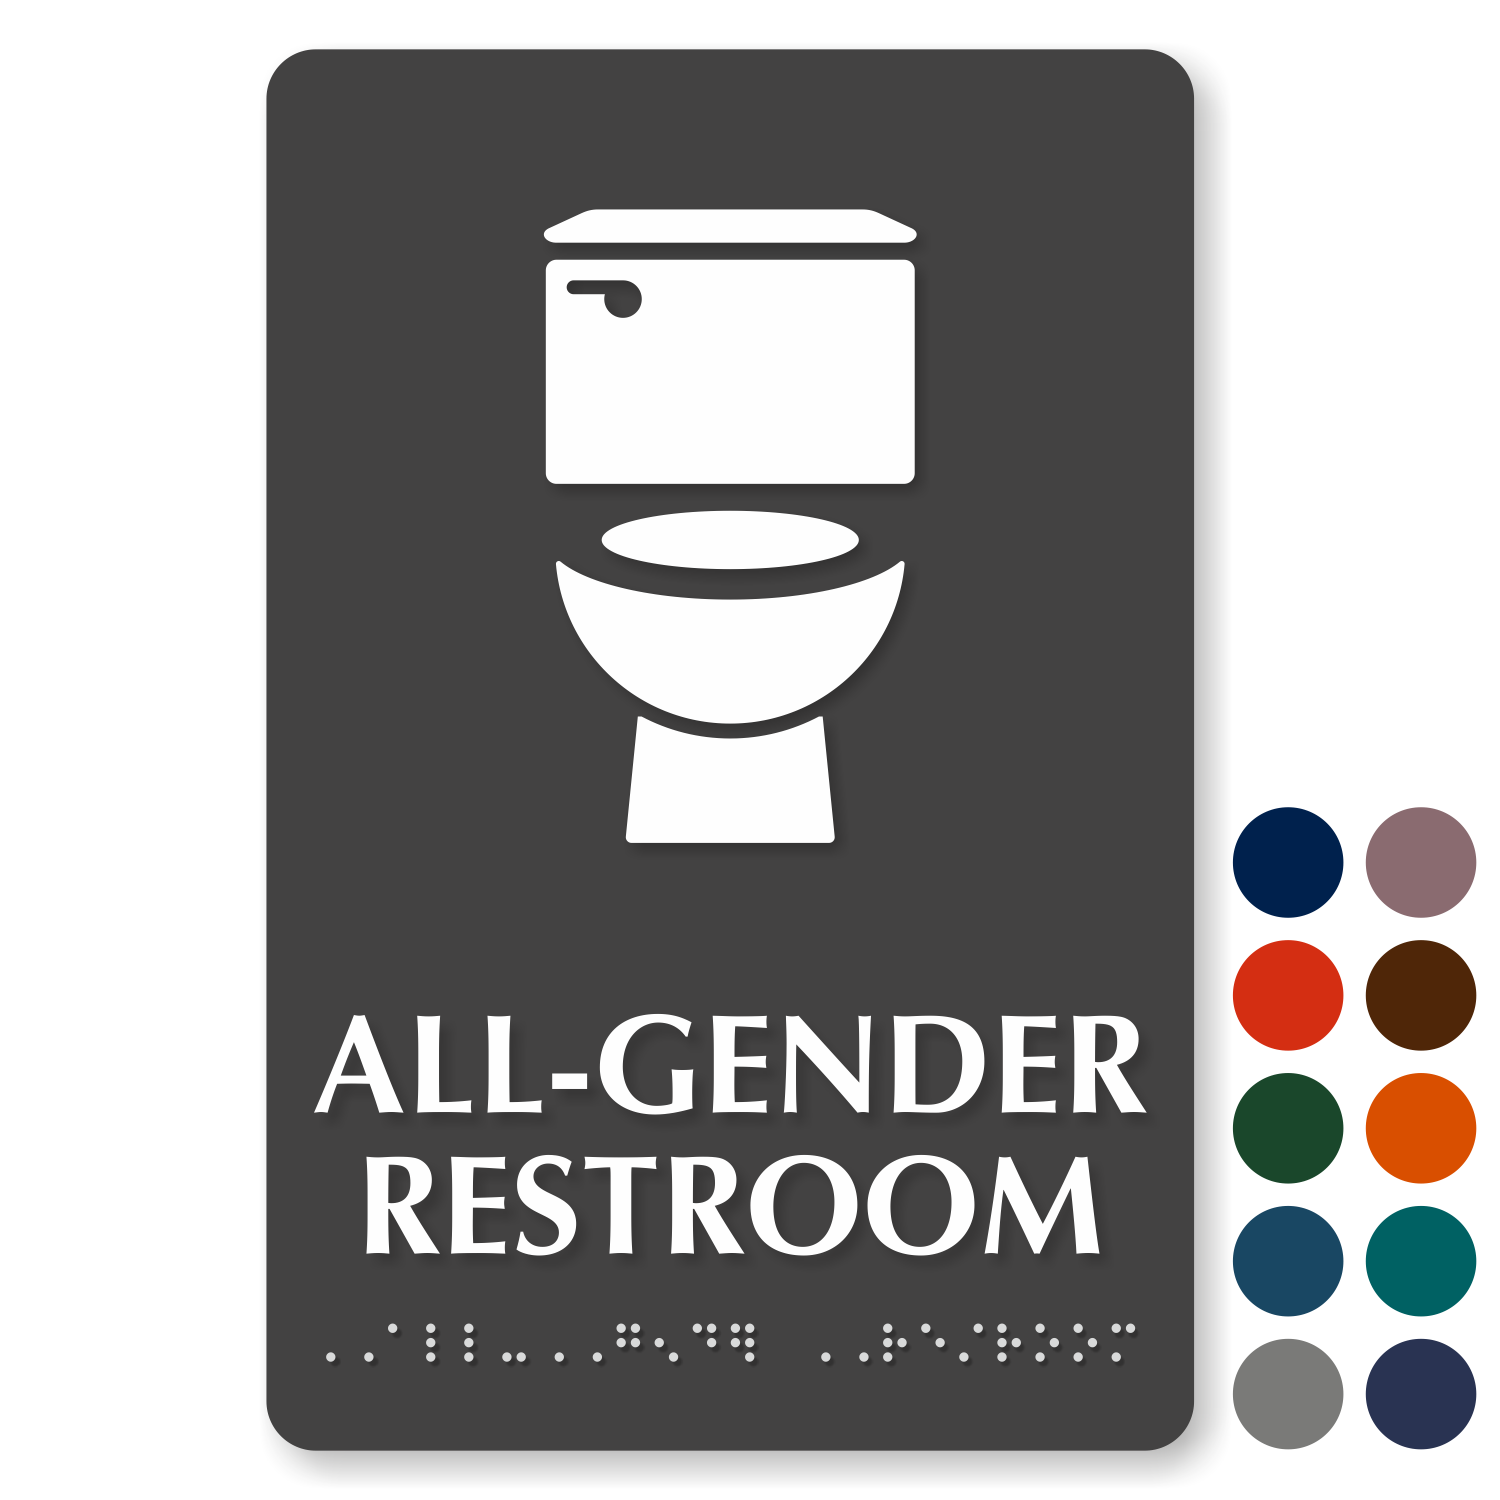 AllGender Restroom Signs Gender Neutral Restroom Signs - Gender neutral bathroom signs